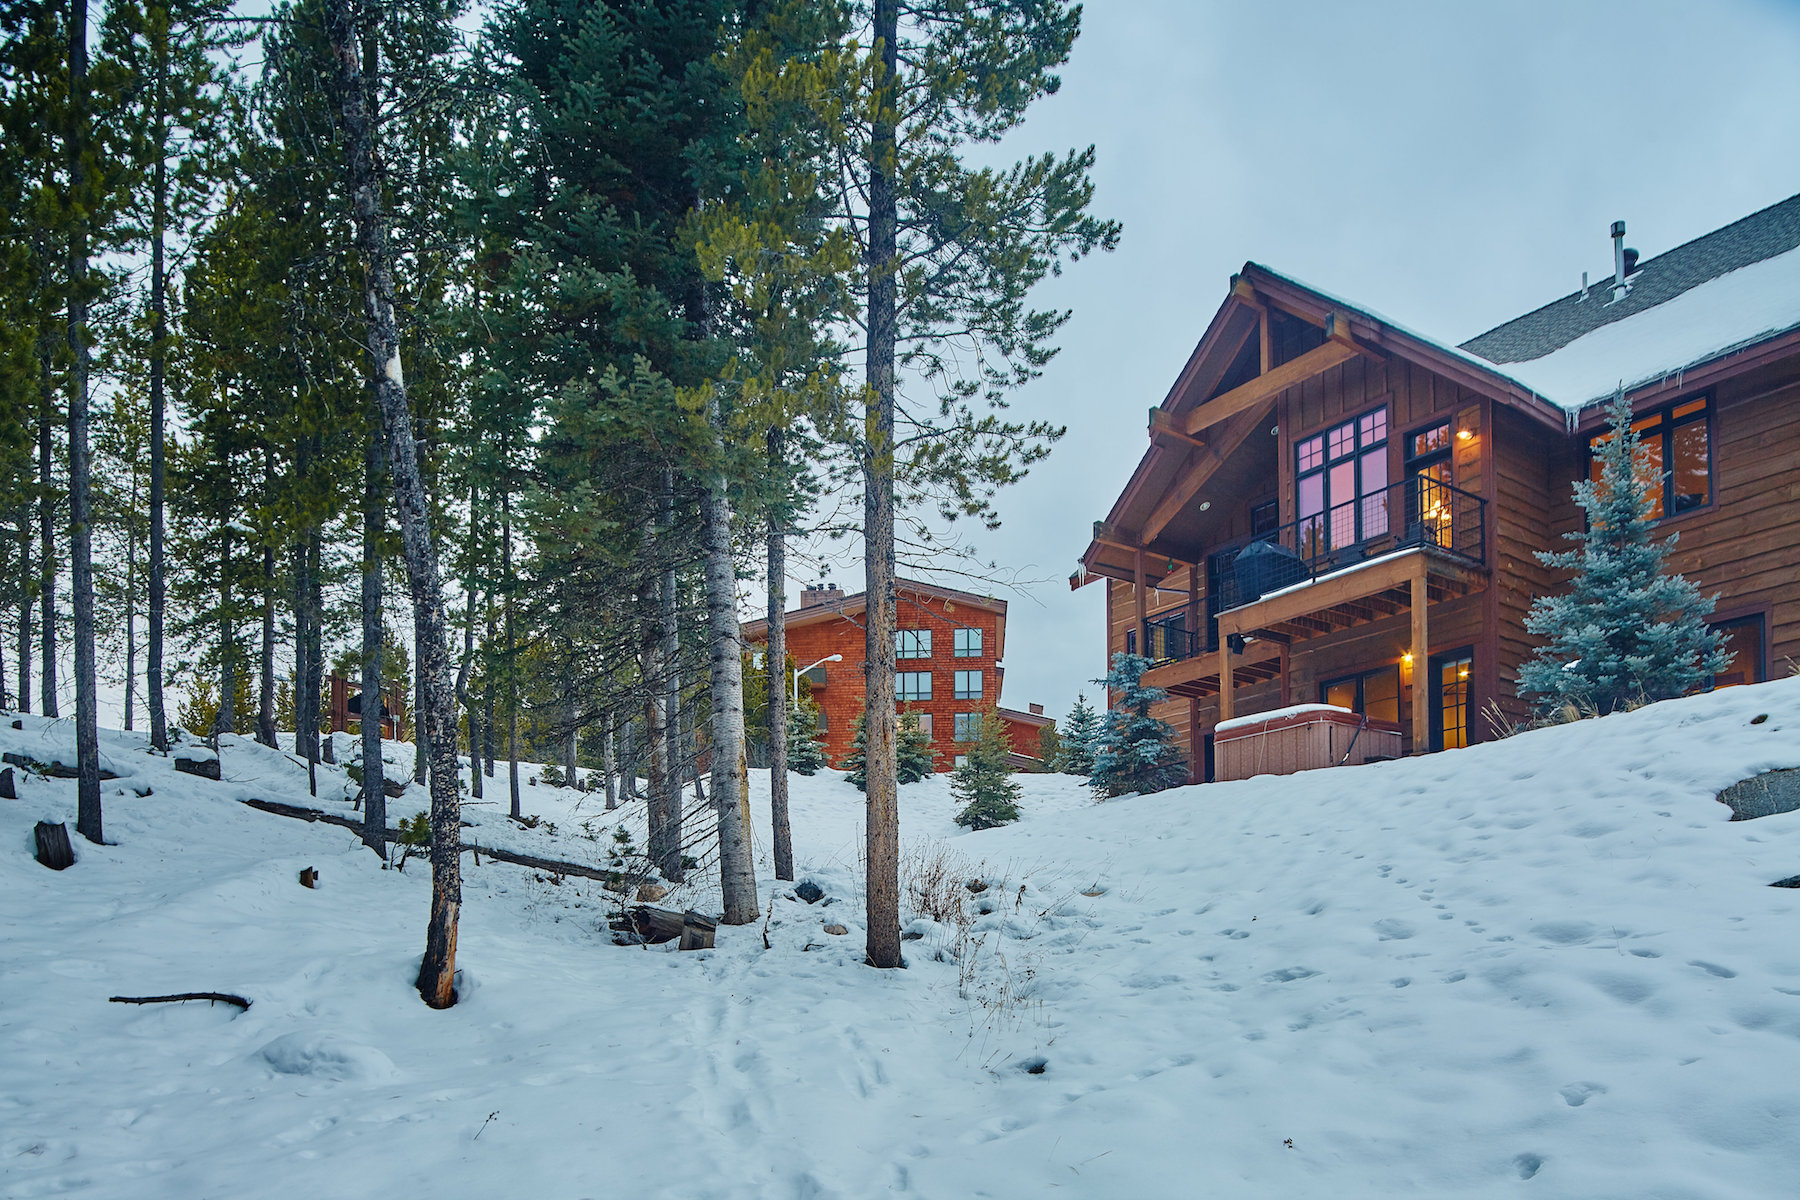 Single Family Home for Sale at Alpenglow 37C Alpenglow 37C, Heavy Runner Road Big Sky, Montana, 59716 United States